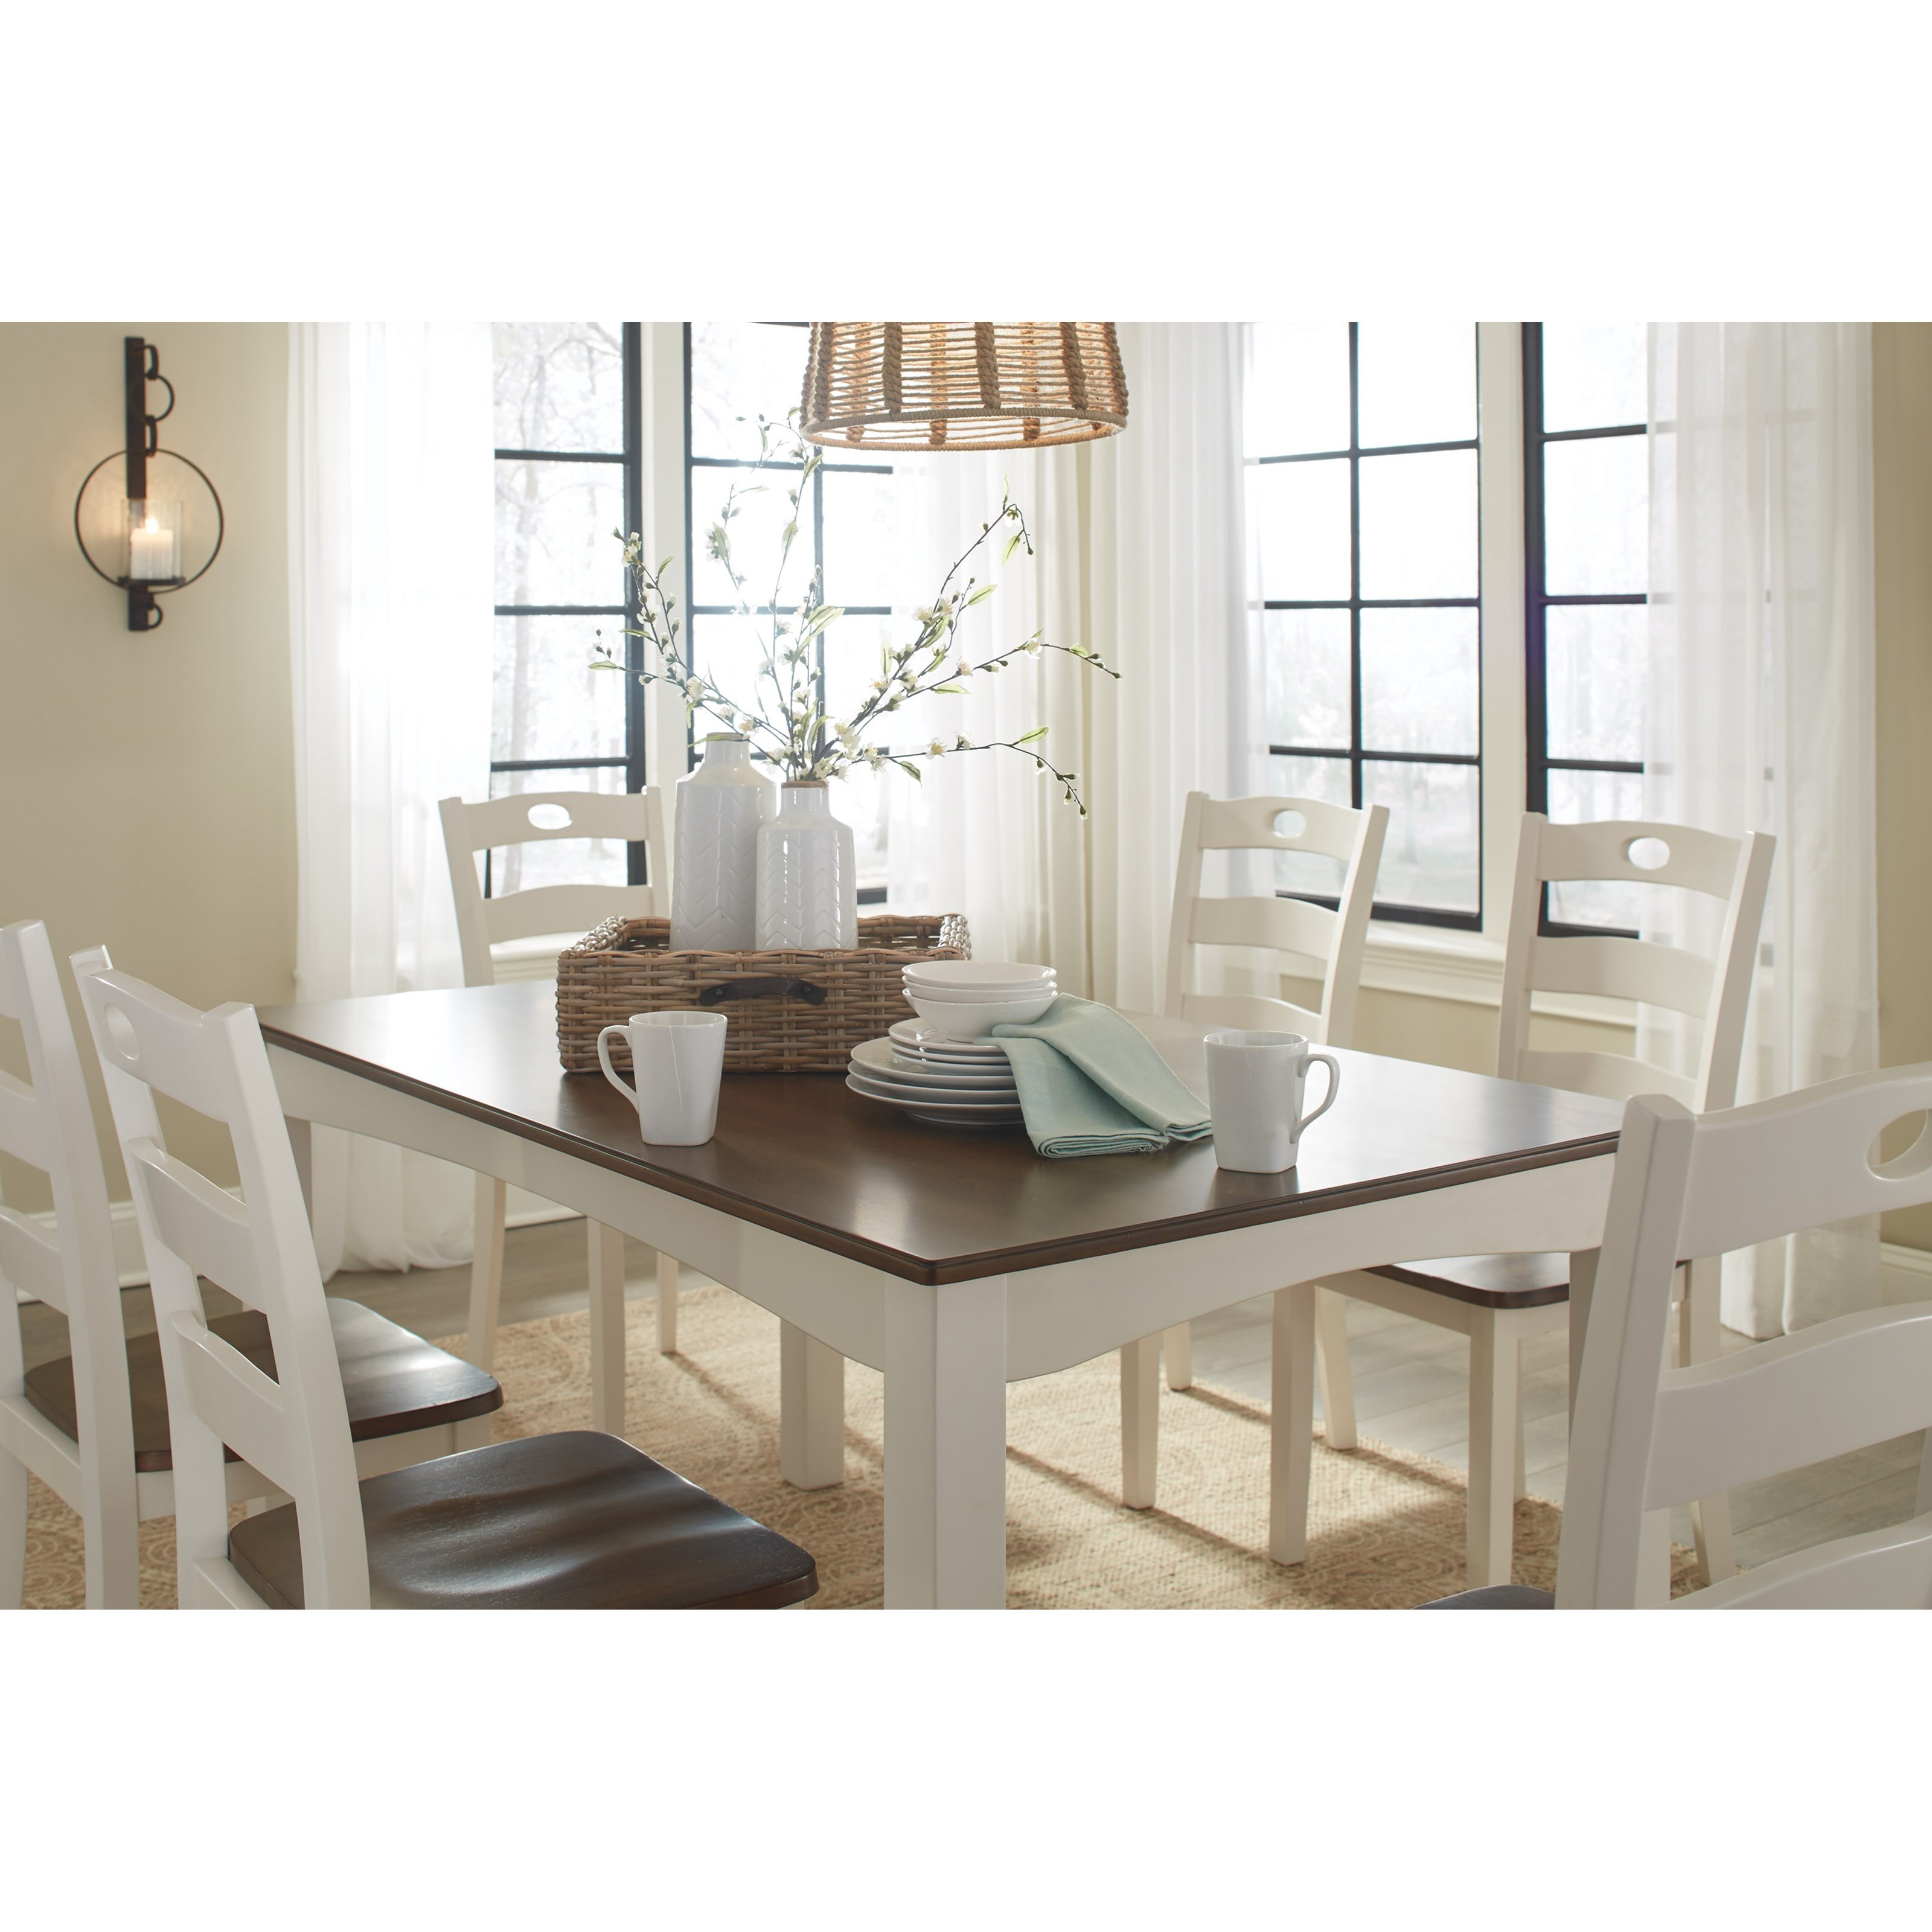 Ashley signature design woodanville two tone finish 7 for 2 piece dining room set